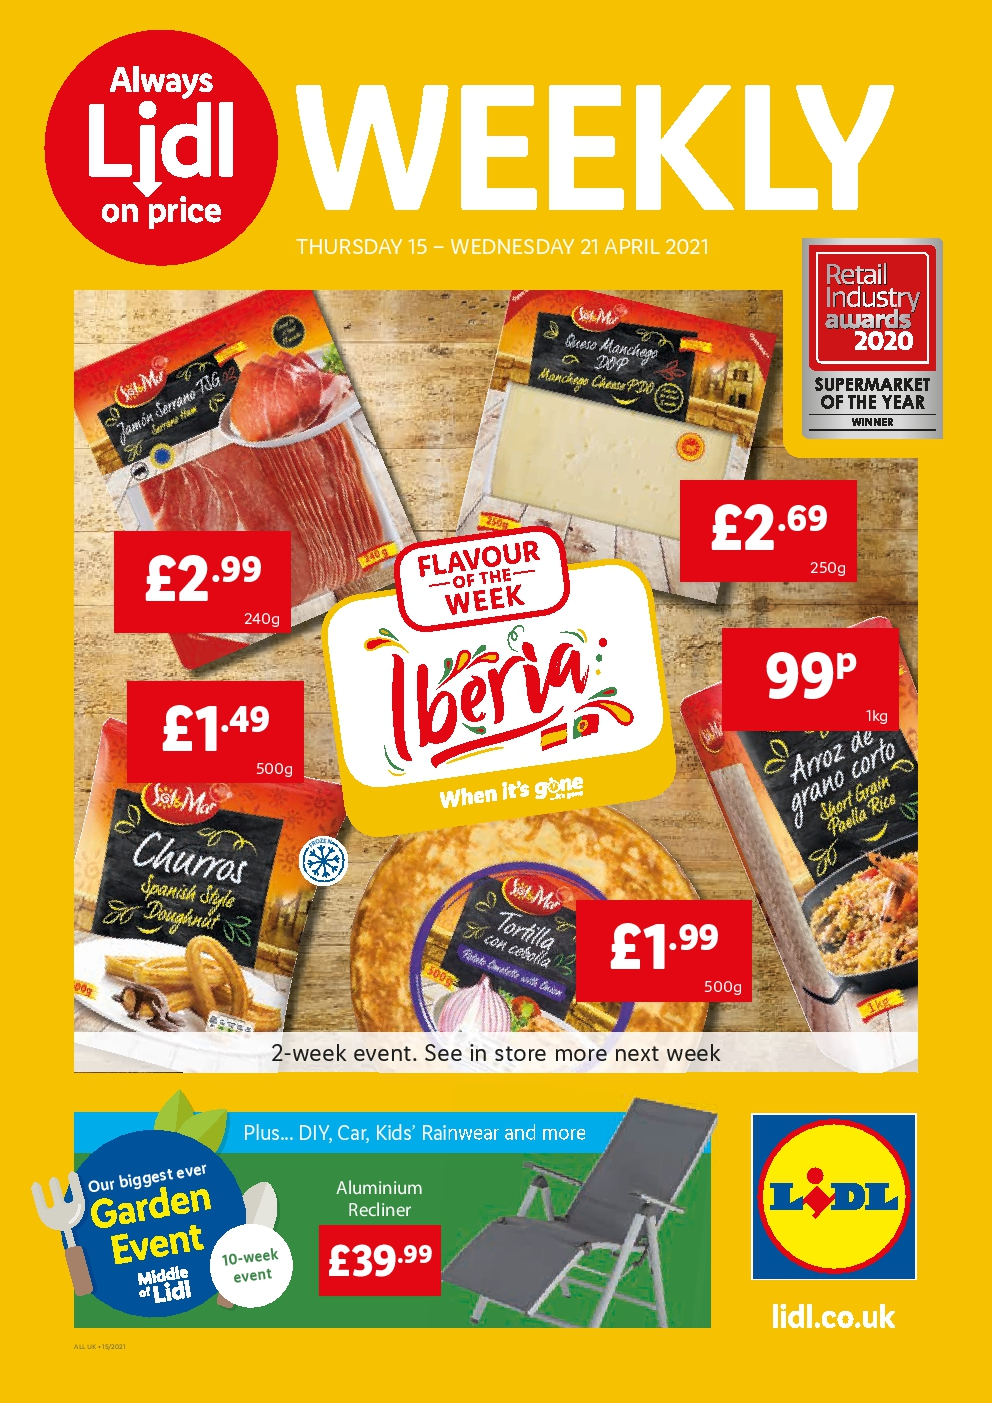 LIDL Offers This Week 15th Apr to 21st Apr 2021 LIDL Special Buys Preview